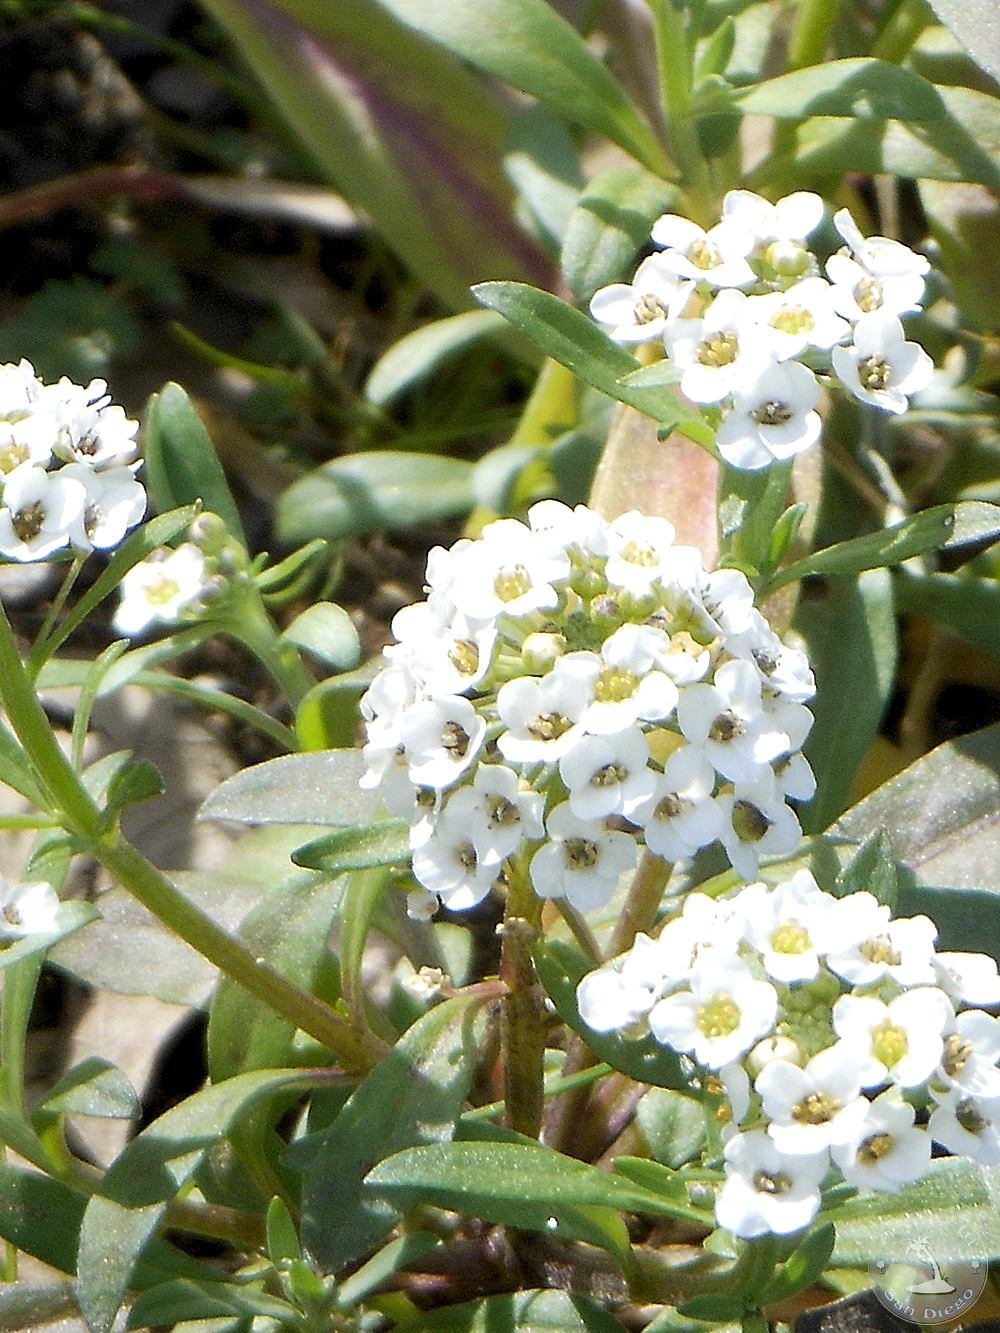 White flower san diego images flower decoration ideas a day in san diego san diego flowers in bloom sweet alyssum white flowers san diego mightylinksfo